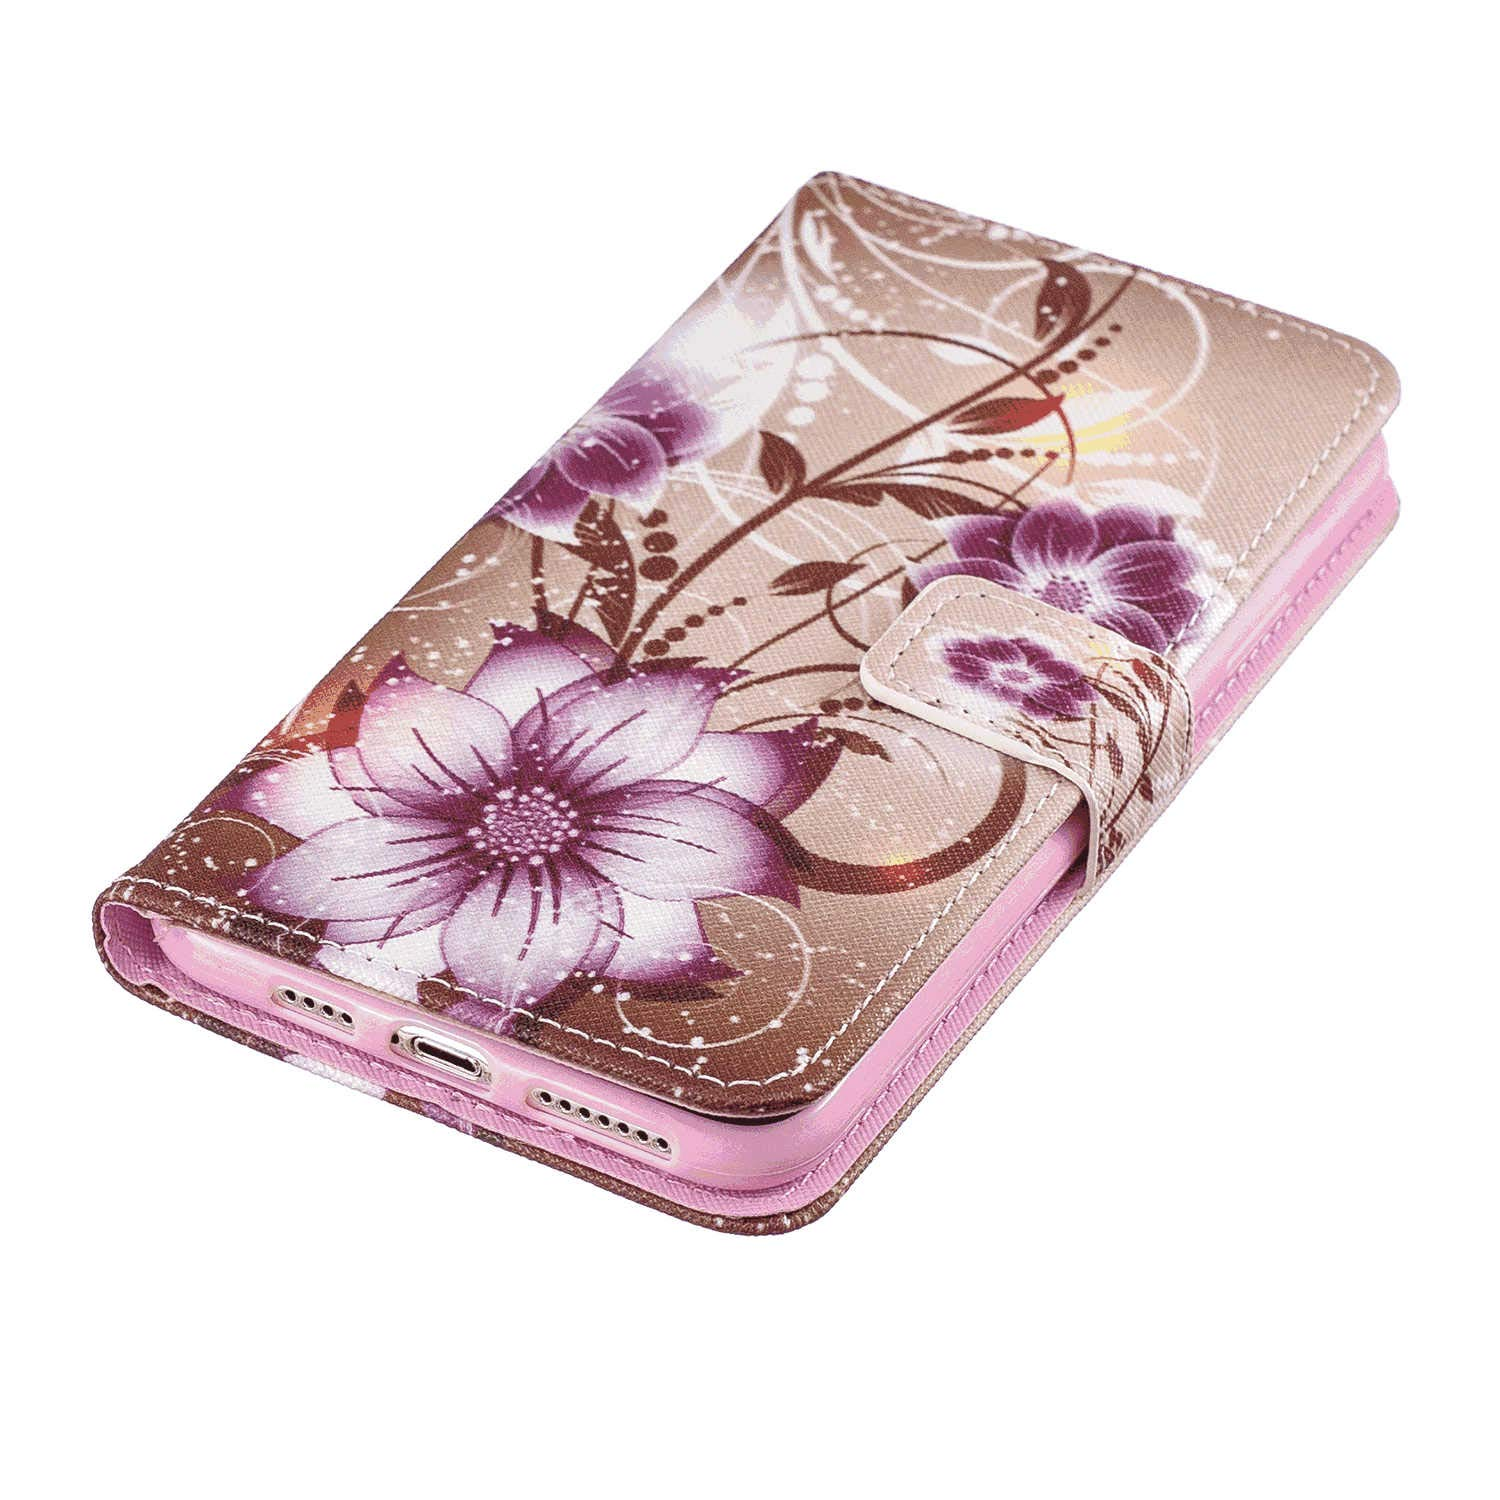 iPhone 11 Flip Case Cover for Leather Kickstand Extra-Protective Business Wallet case Card Holders Flip Cover